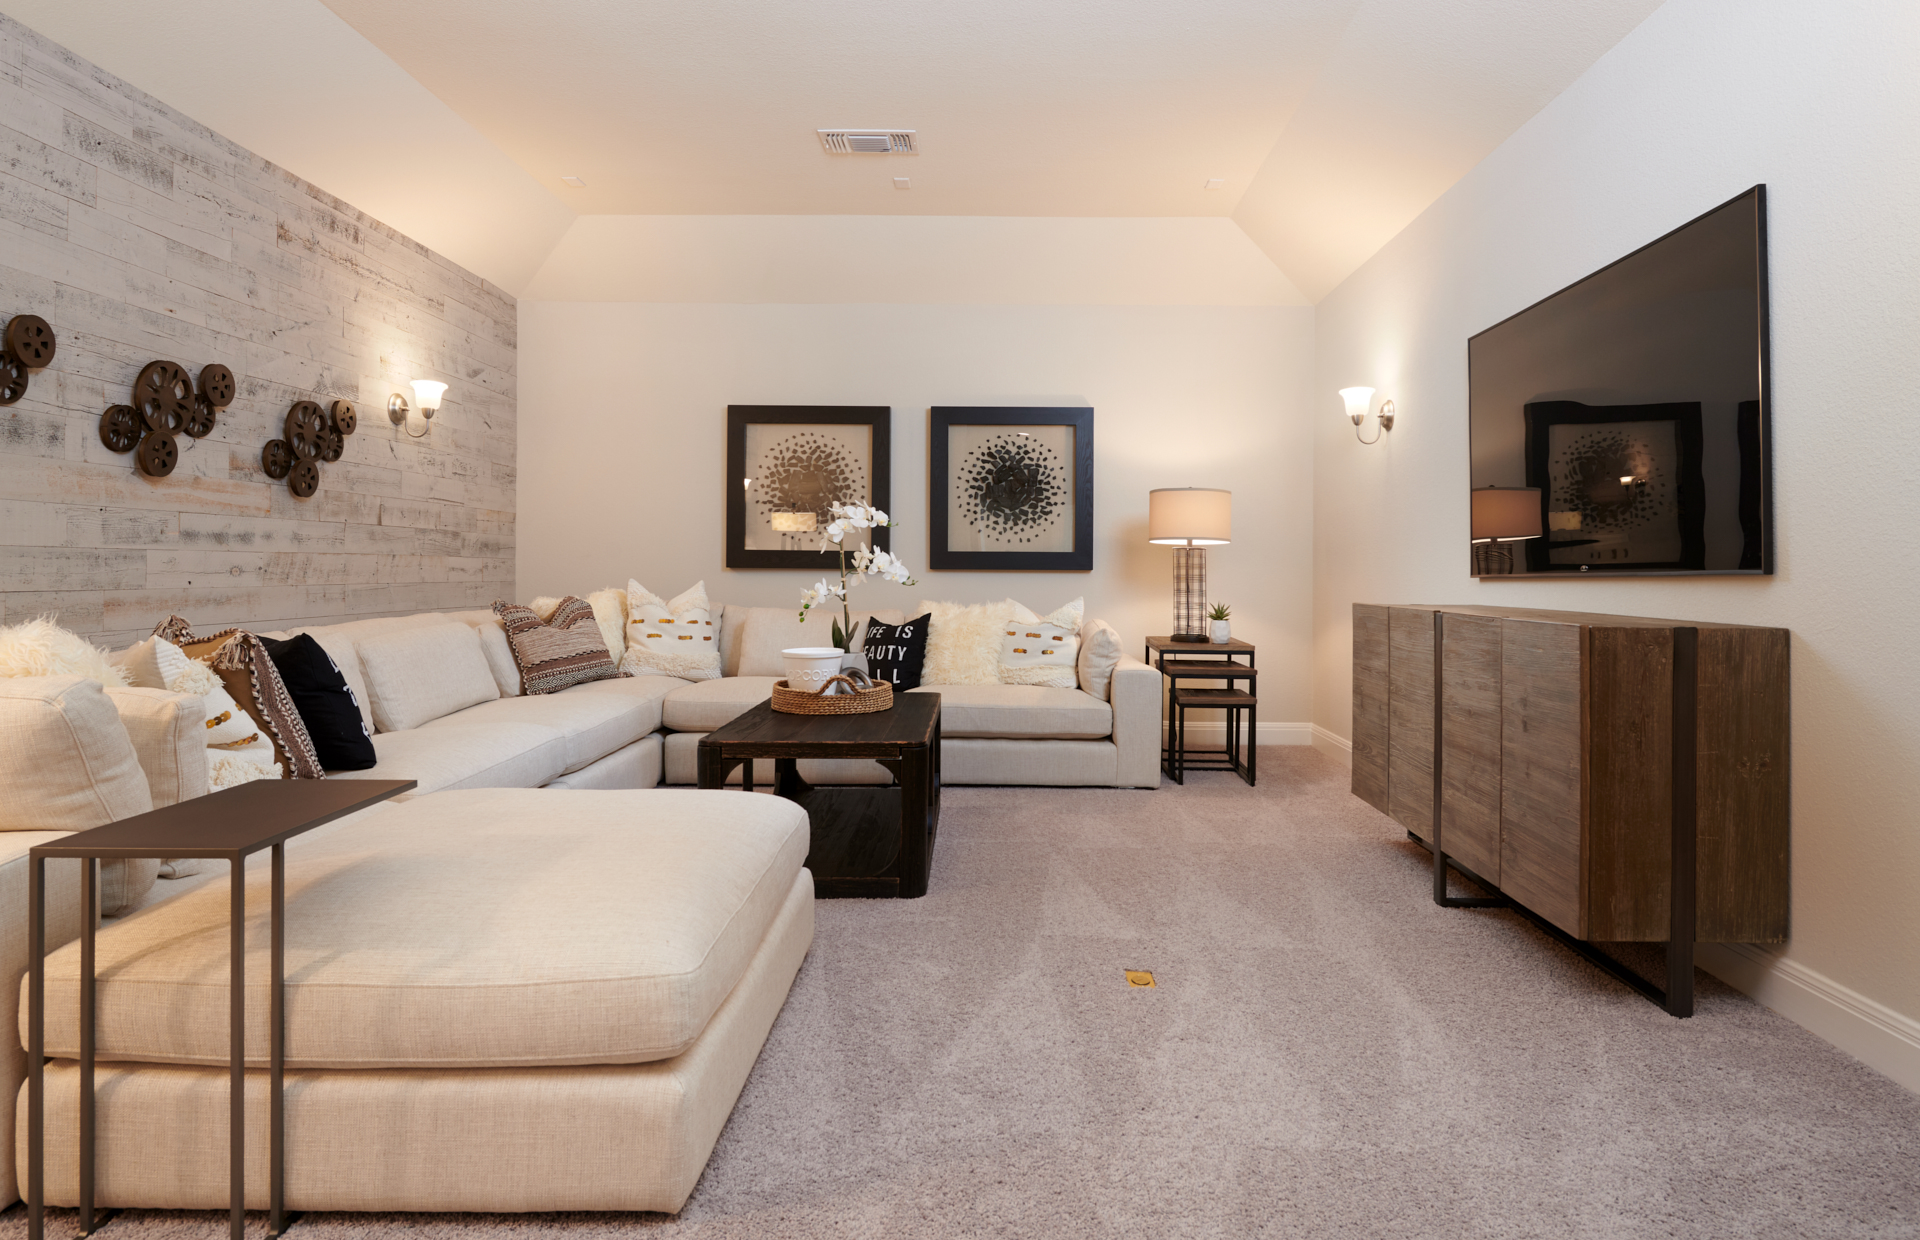 Carmel by Pulte Homes image 8